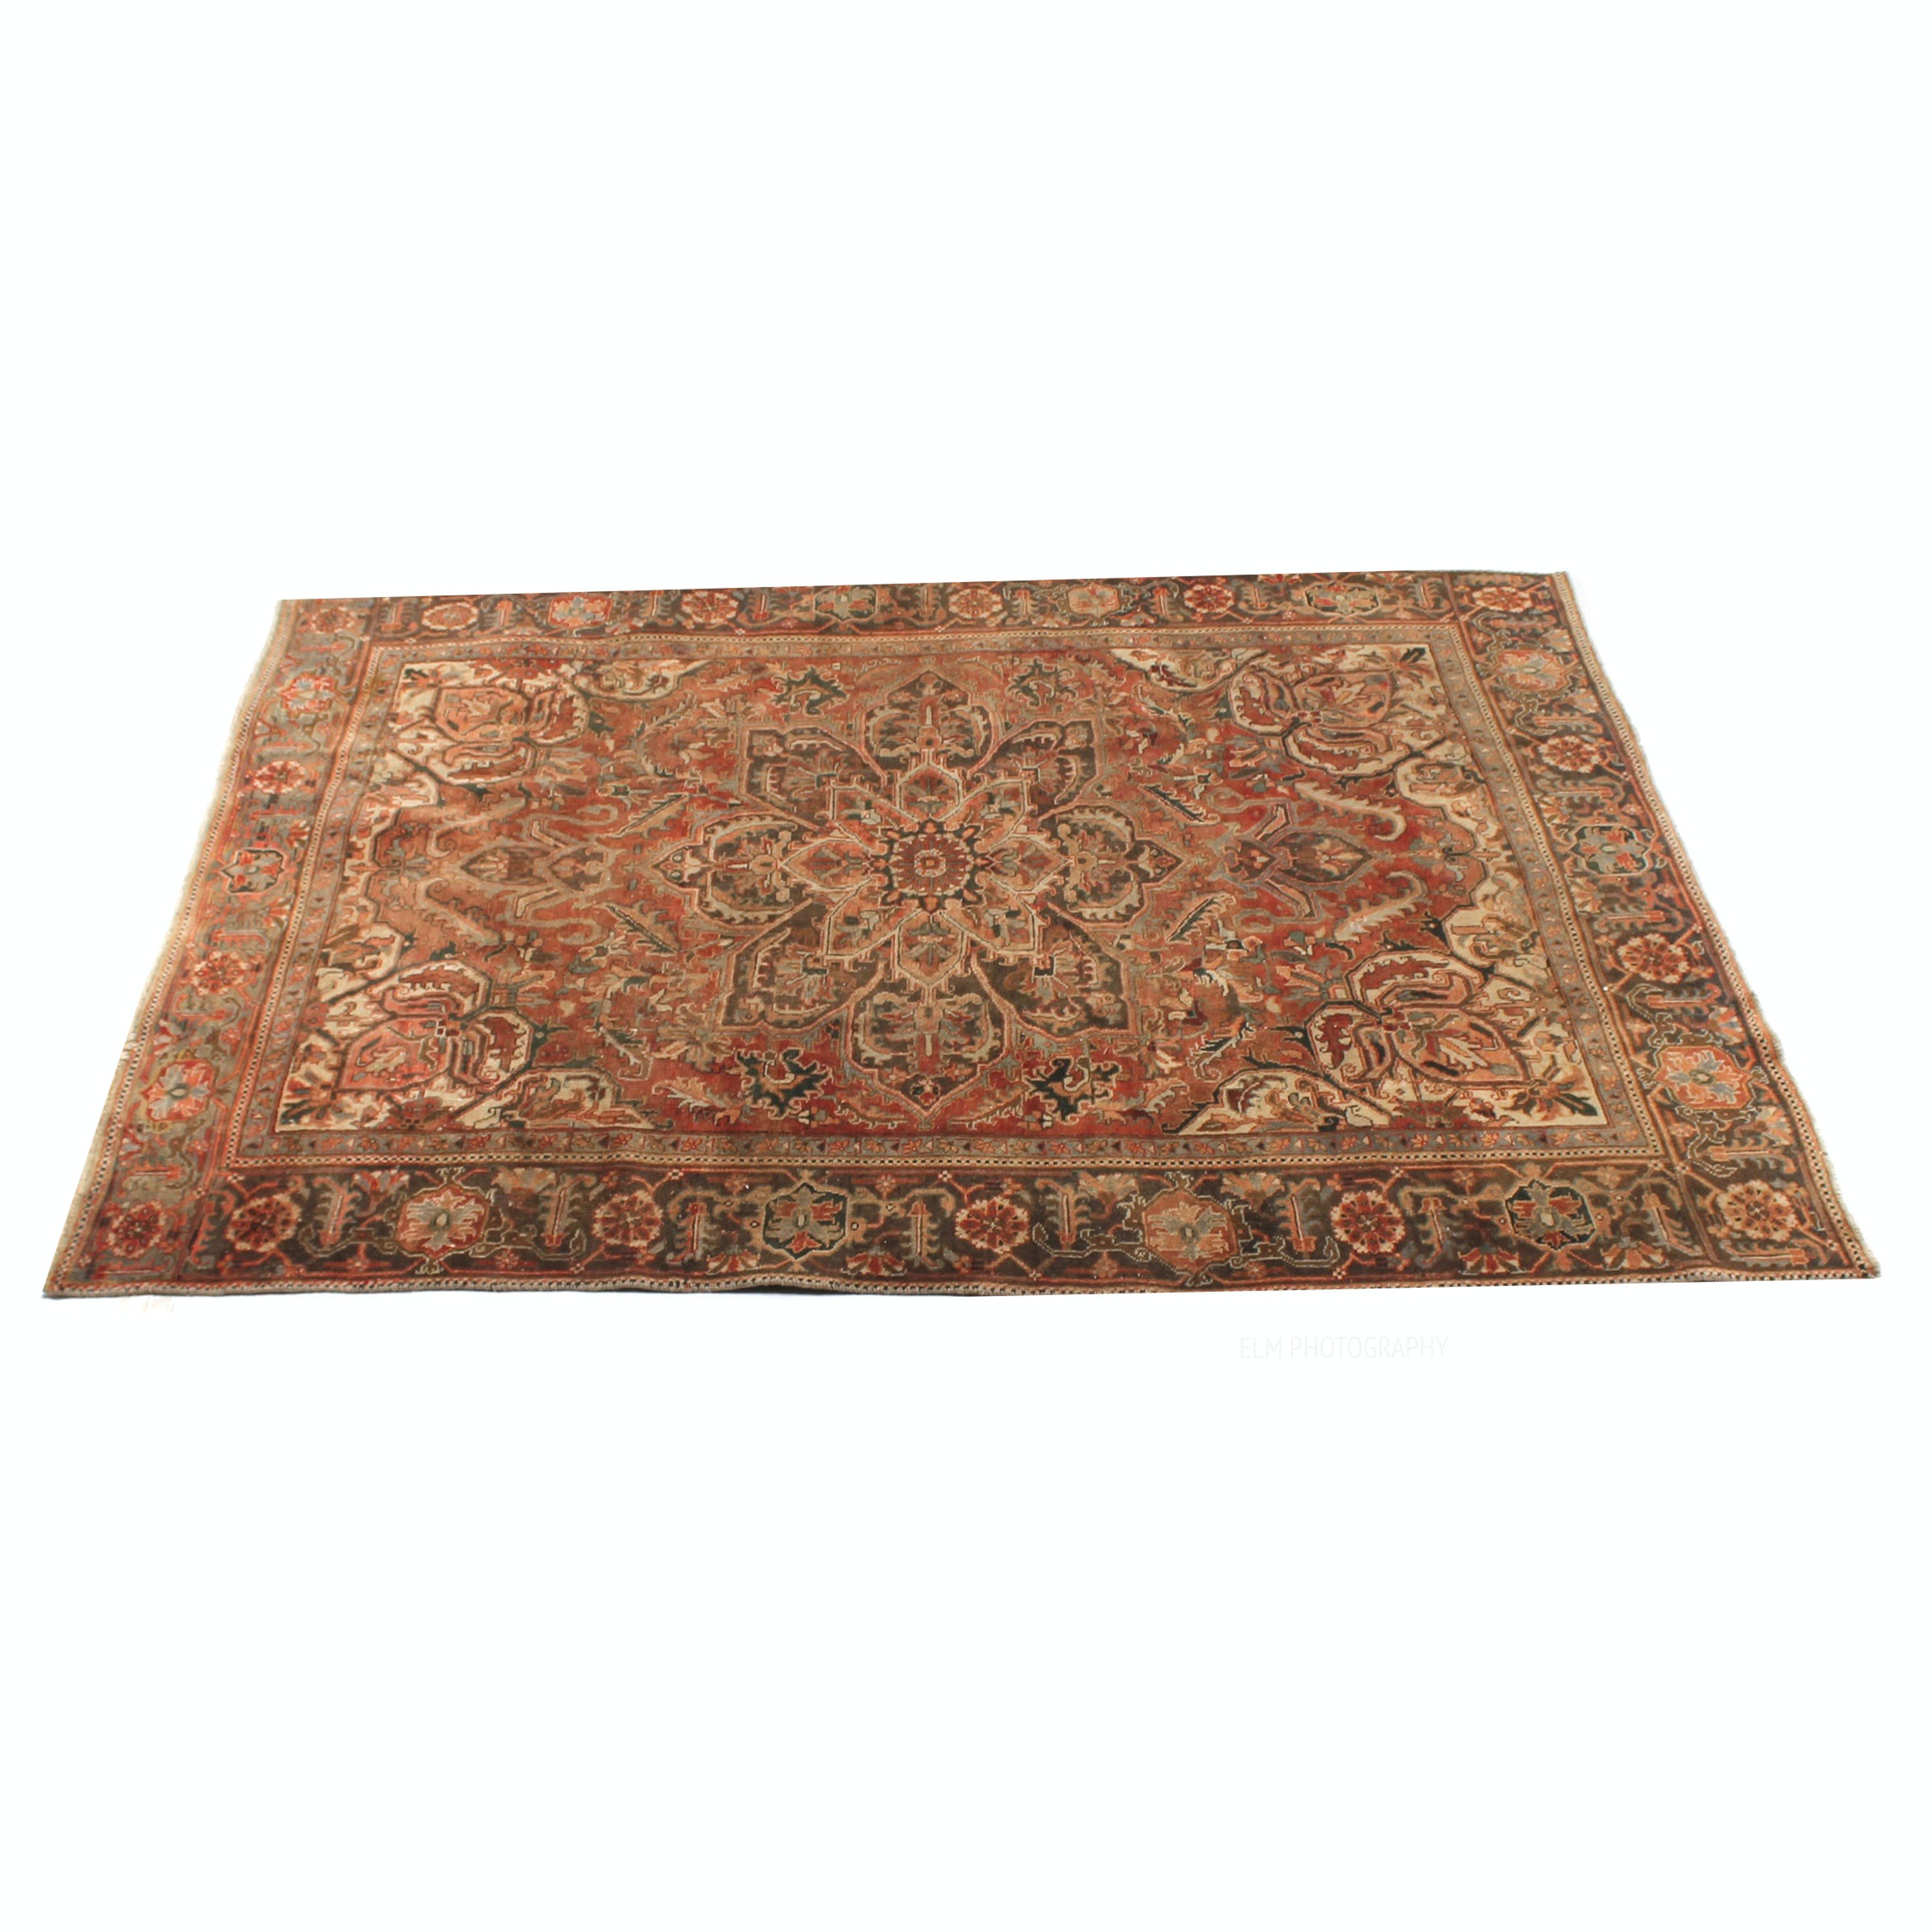 Semi-Antique Hand-Knotted Persian Heriz Serapi Area Rug